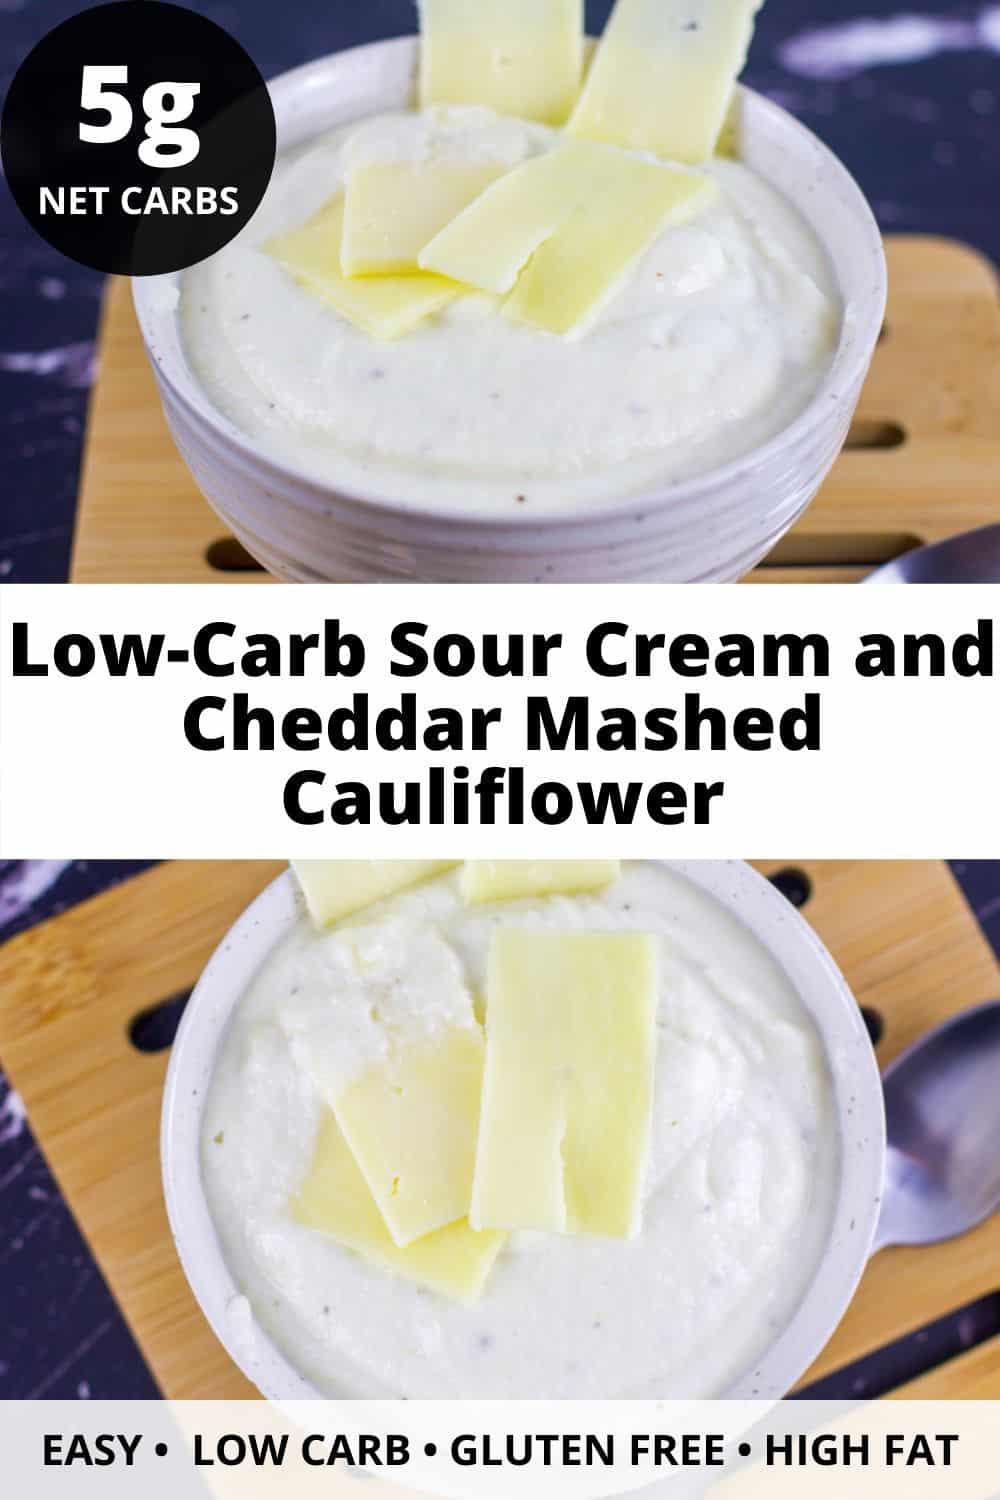 Low-Carb Sour Cream and Cheddar Mashed Cauliflower